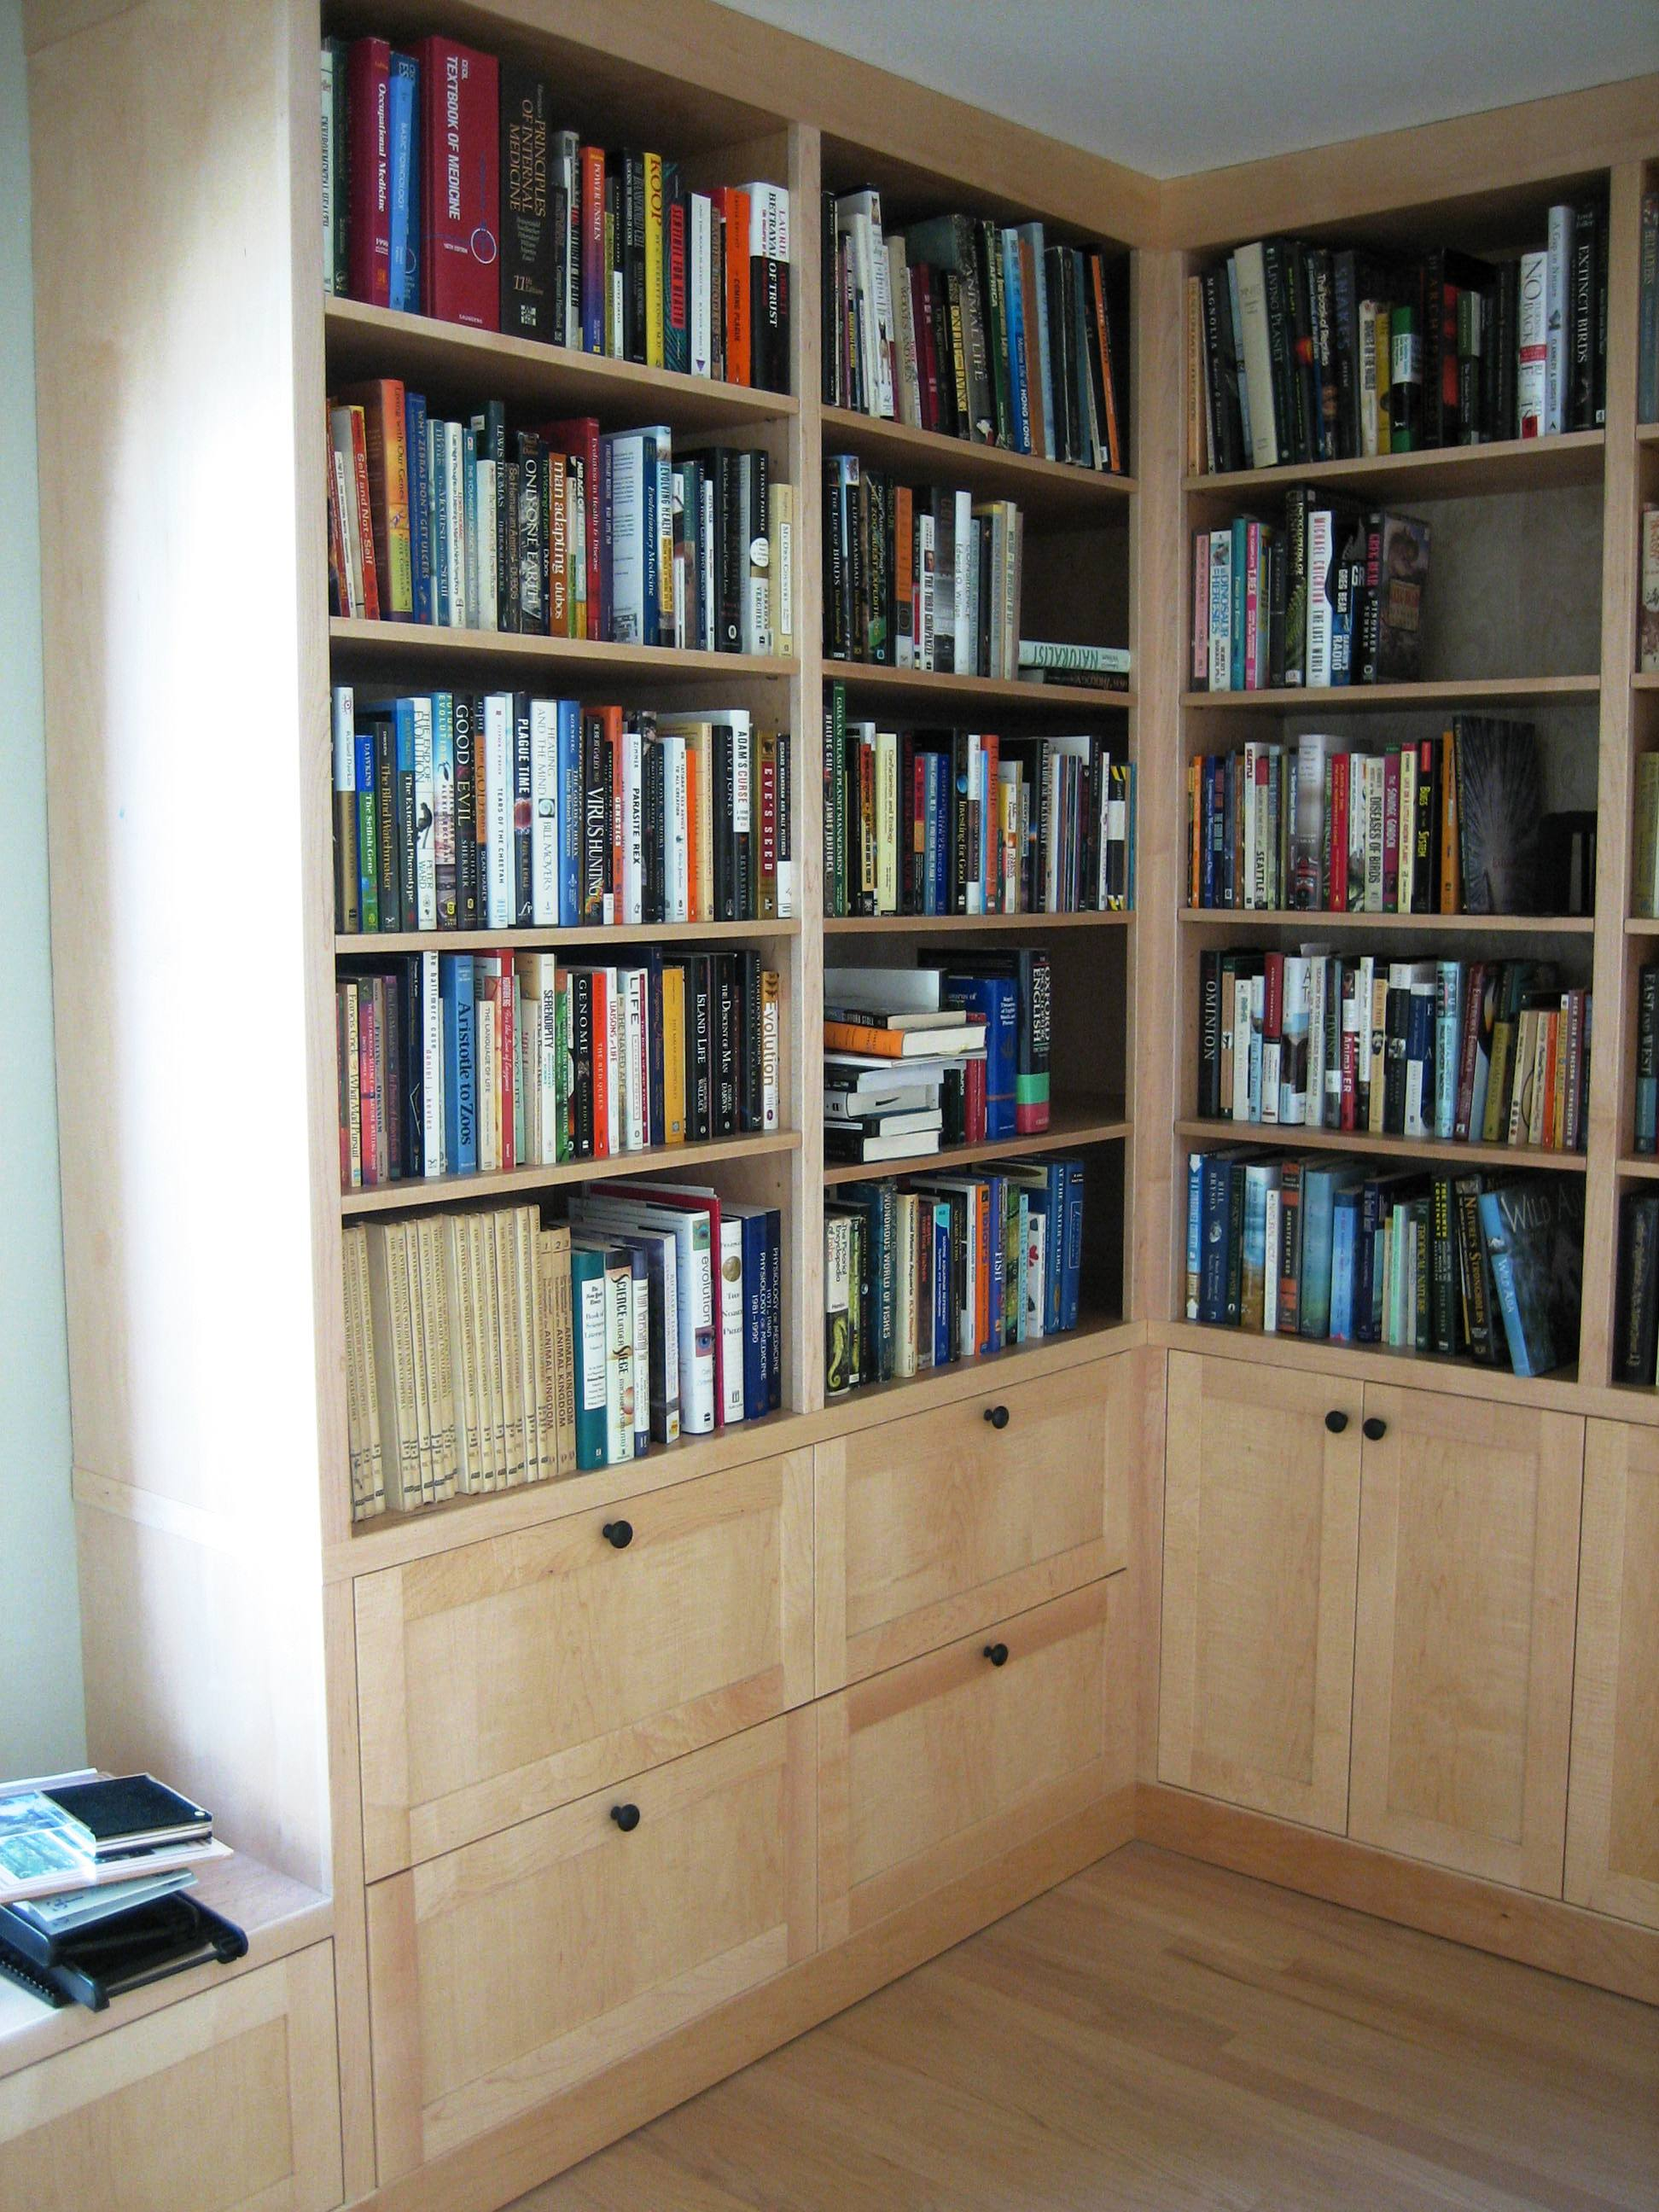 Luk_Library_bookcase.JPG